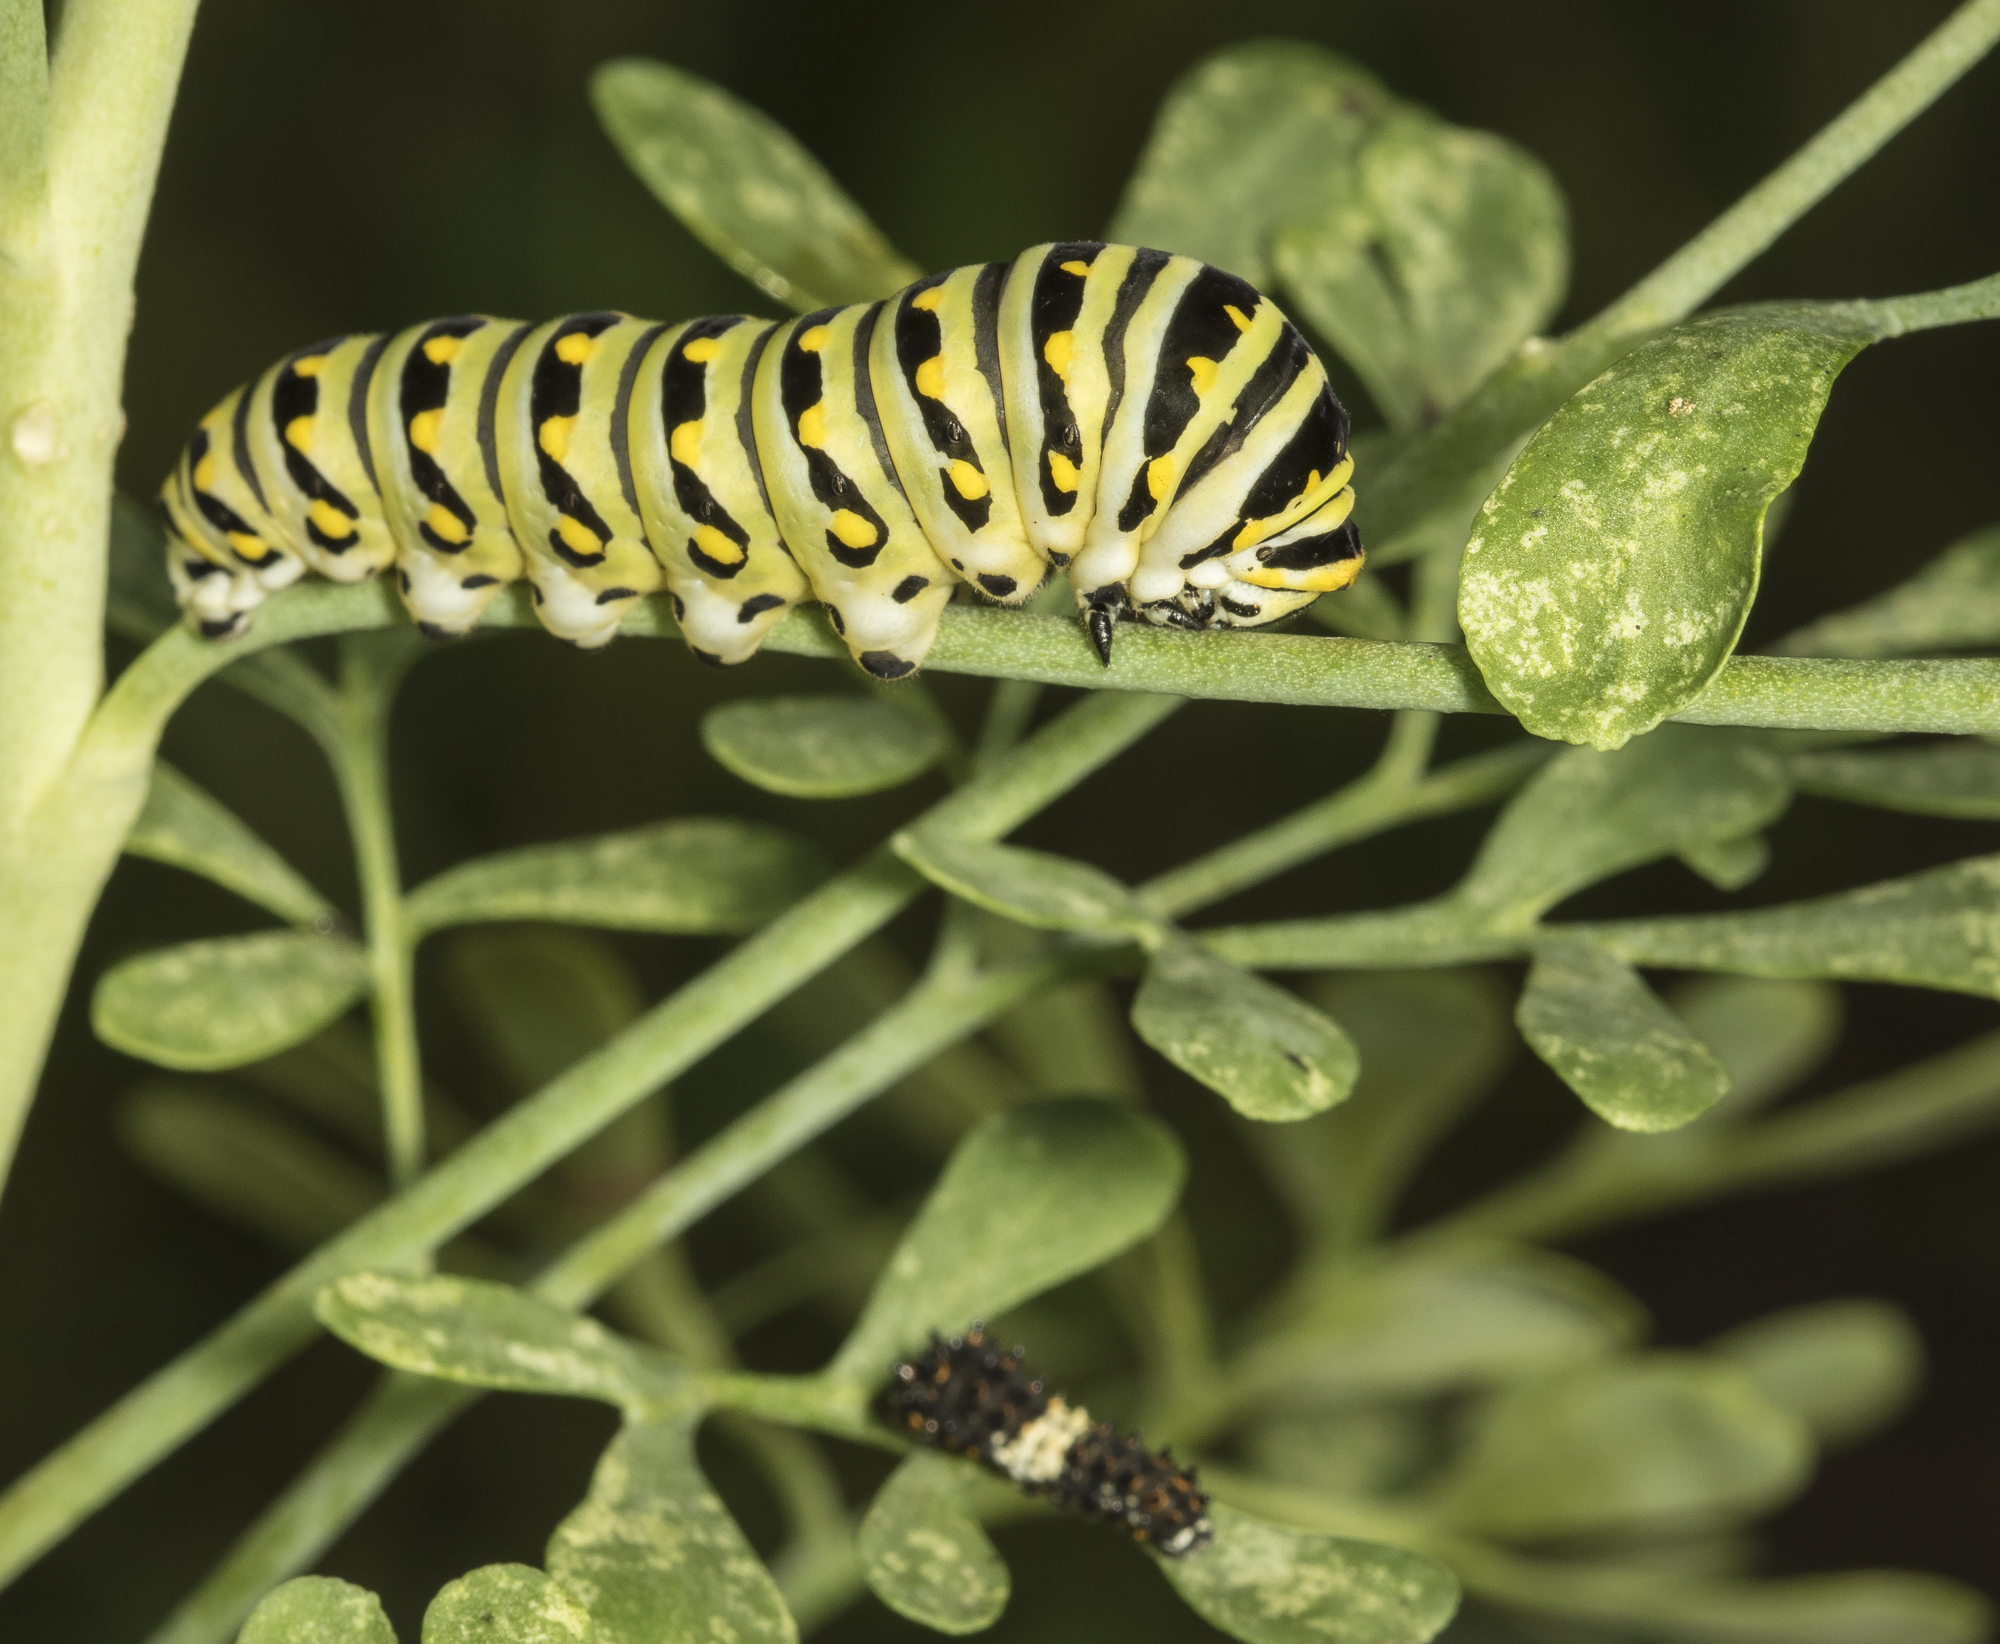 Black swalowtail larvae on rue